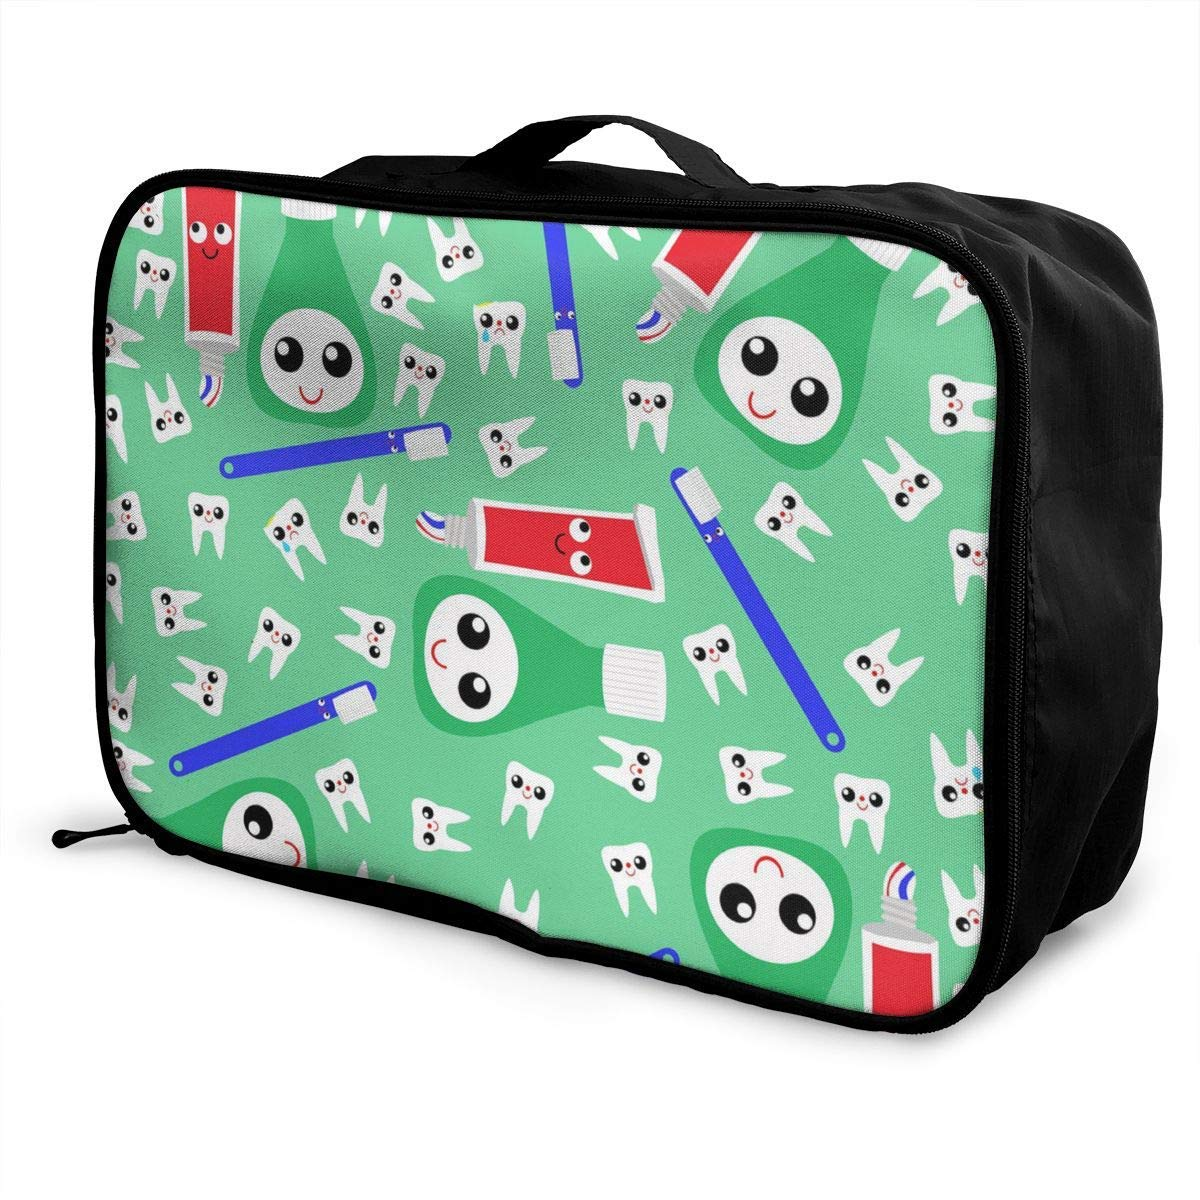 Travel Lightweight Waterproof Foldable Storage Carry Luggage Duffle Tote Bag Cute Teeth Toothpaste Green JTRVW Luggage Bags for Travel